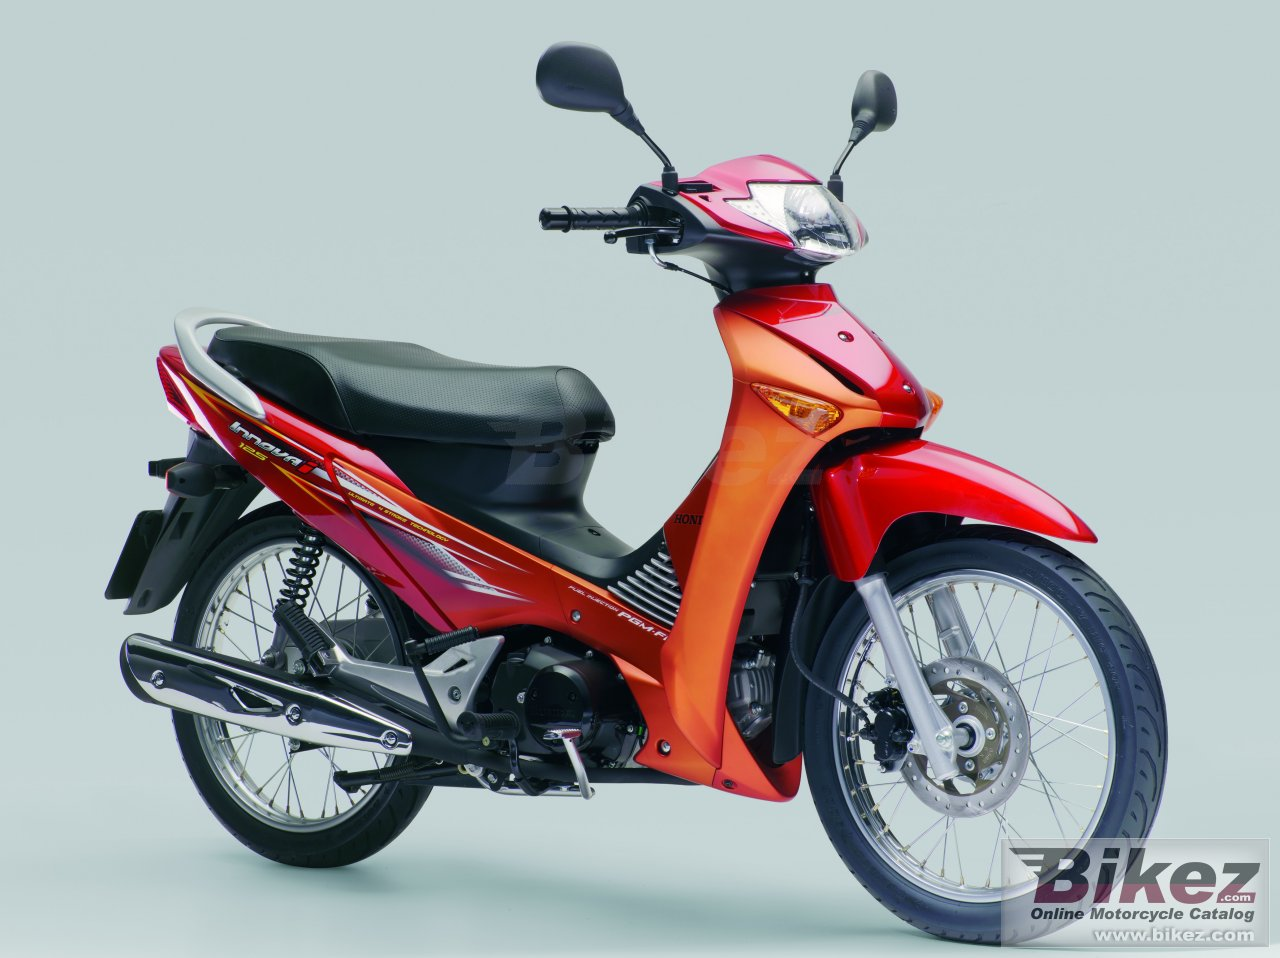 Big Honda anf 125 innova picture and wallpaper from Bikez.com